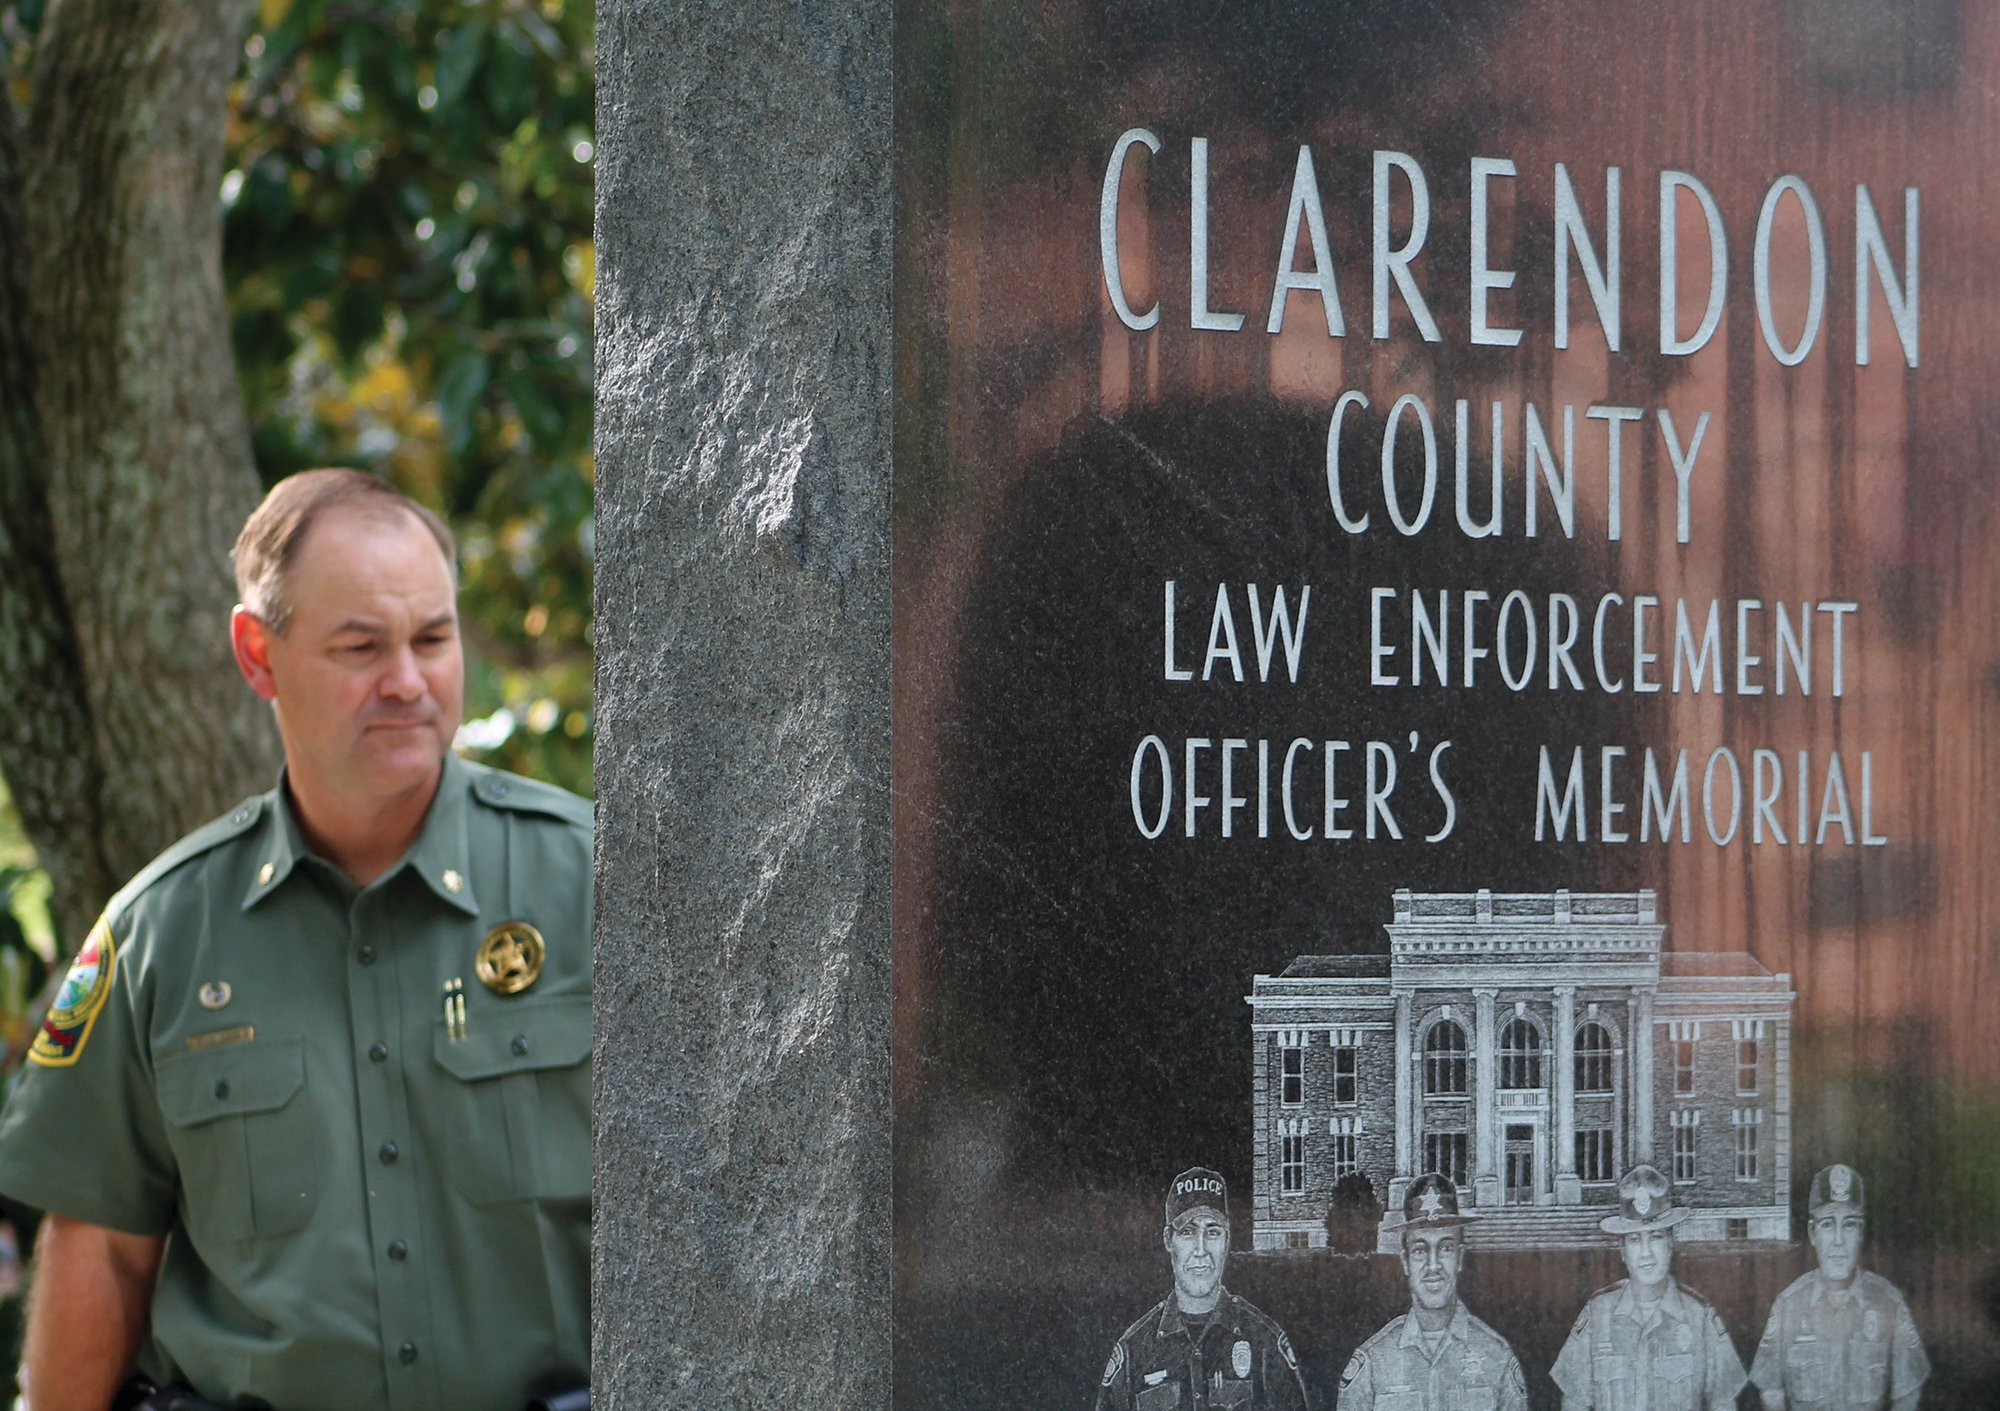 Maj. Billy Downer with the South Carolina Department of Natural Resources remembers many of the officers whose names are engraved on the Clarendon County Law Enforcement Officers' Memorial. Downer, along with fellow officers from various agencies, made possible the memorial that rests on the west side on the Clarendon County Courthouse grounds.